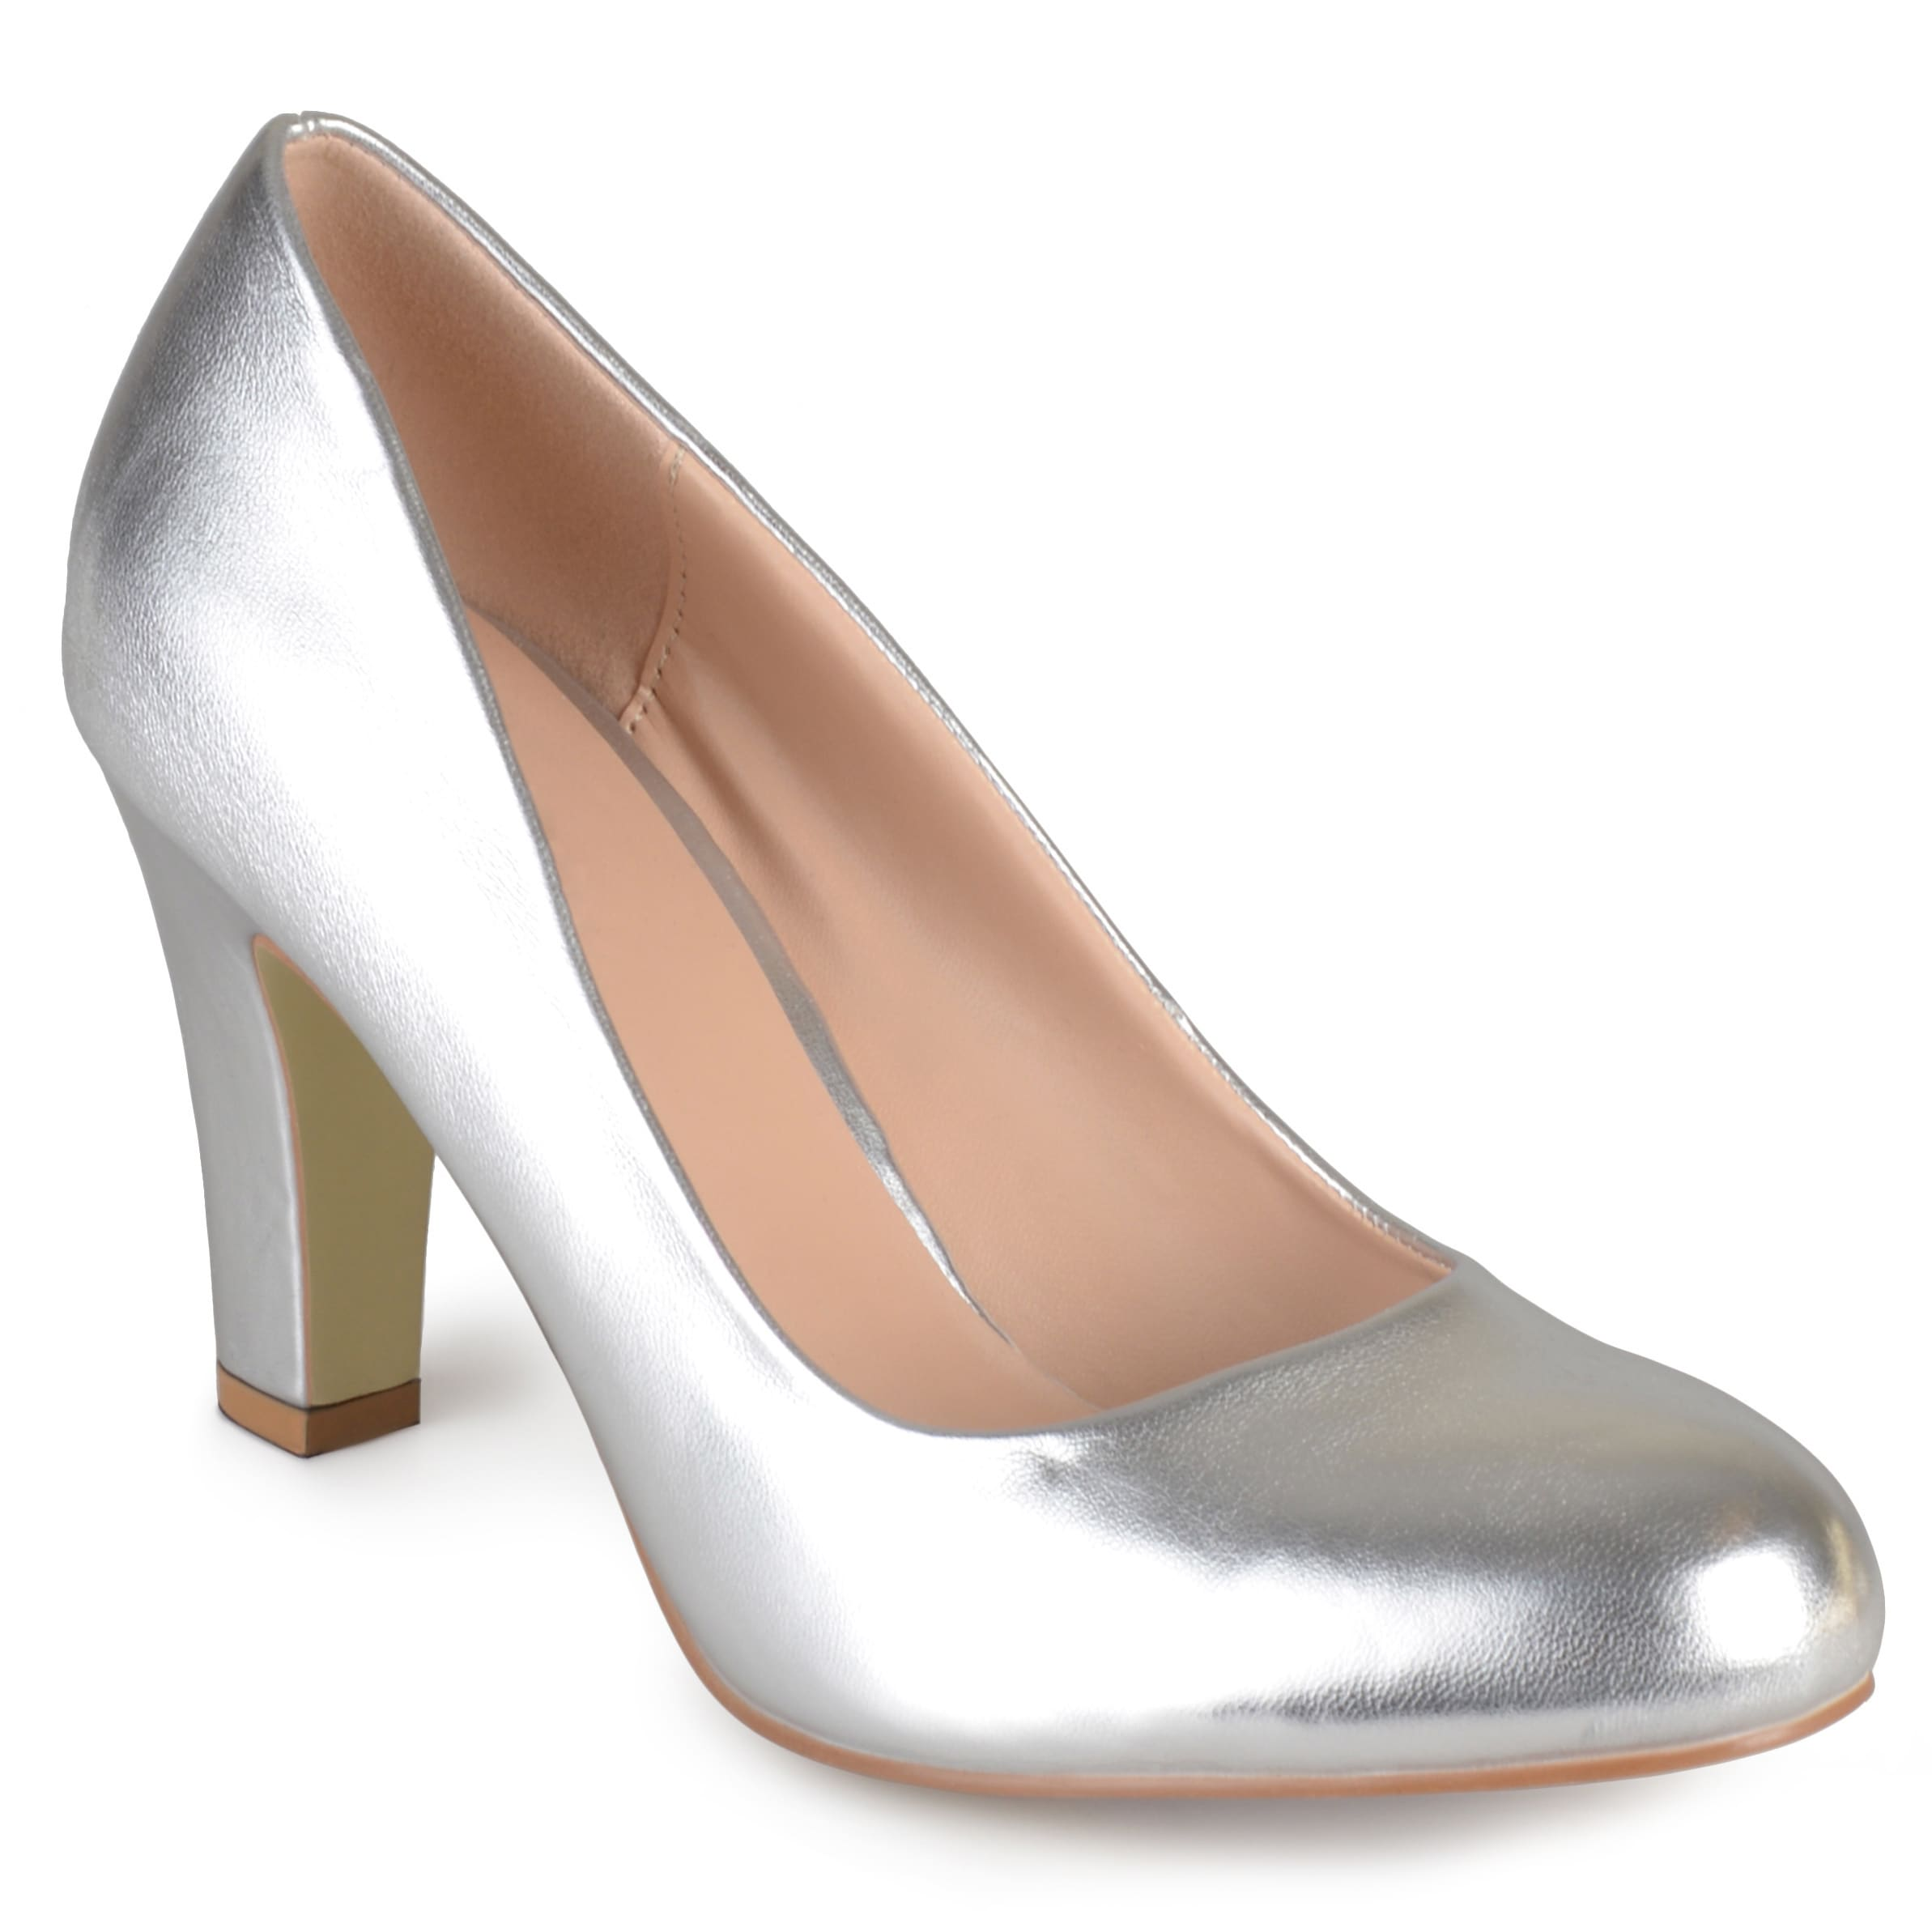 e4e625fd476 Shop Journee Collection Women s  Ice  Matte Finish Chunky Heel Pumps - Free  Shipping On Orders Over  45 - Overstock - 10337946